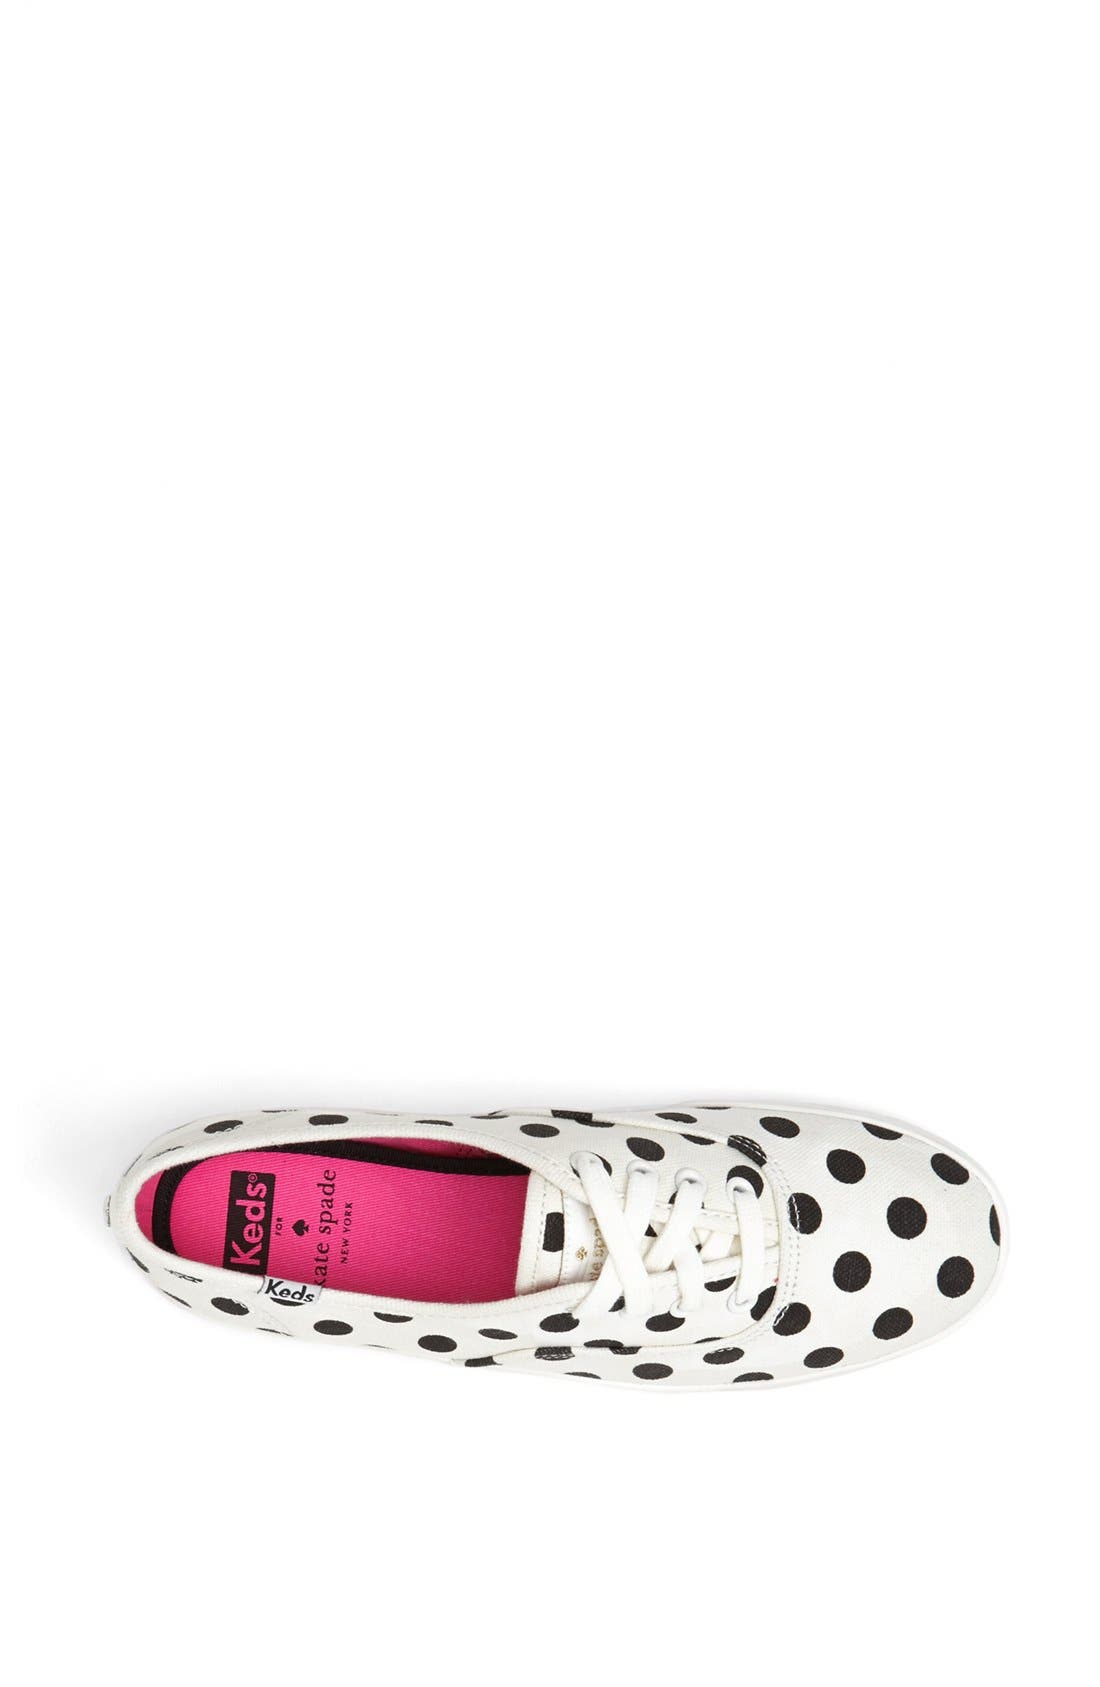 KEDS<SUP>®</SUP> FOR KATE SPADE NEW YORK,                             'kick' sneaker,                             Alternate thumbnail 4, color,                             900